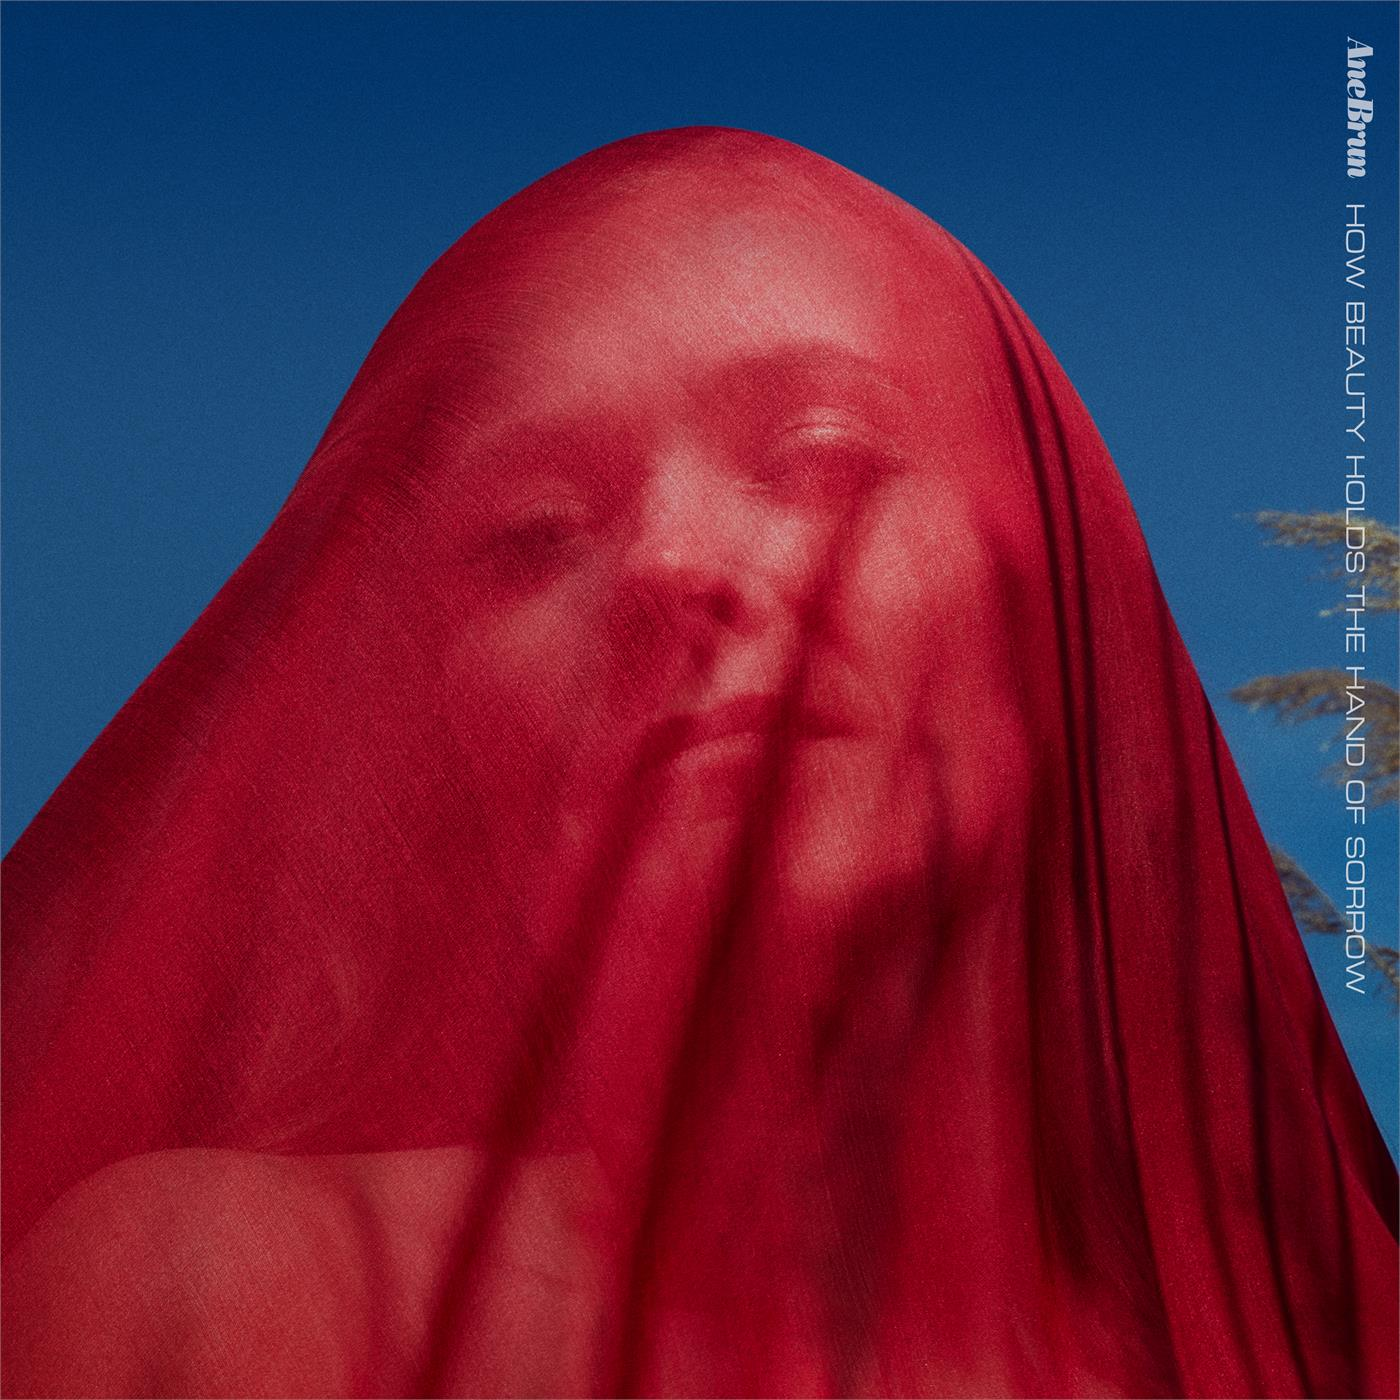 Ane Brun - How Beauty Holds The Hand Of Sorrow [LP]